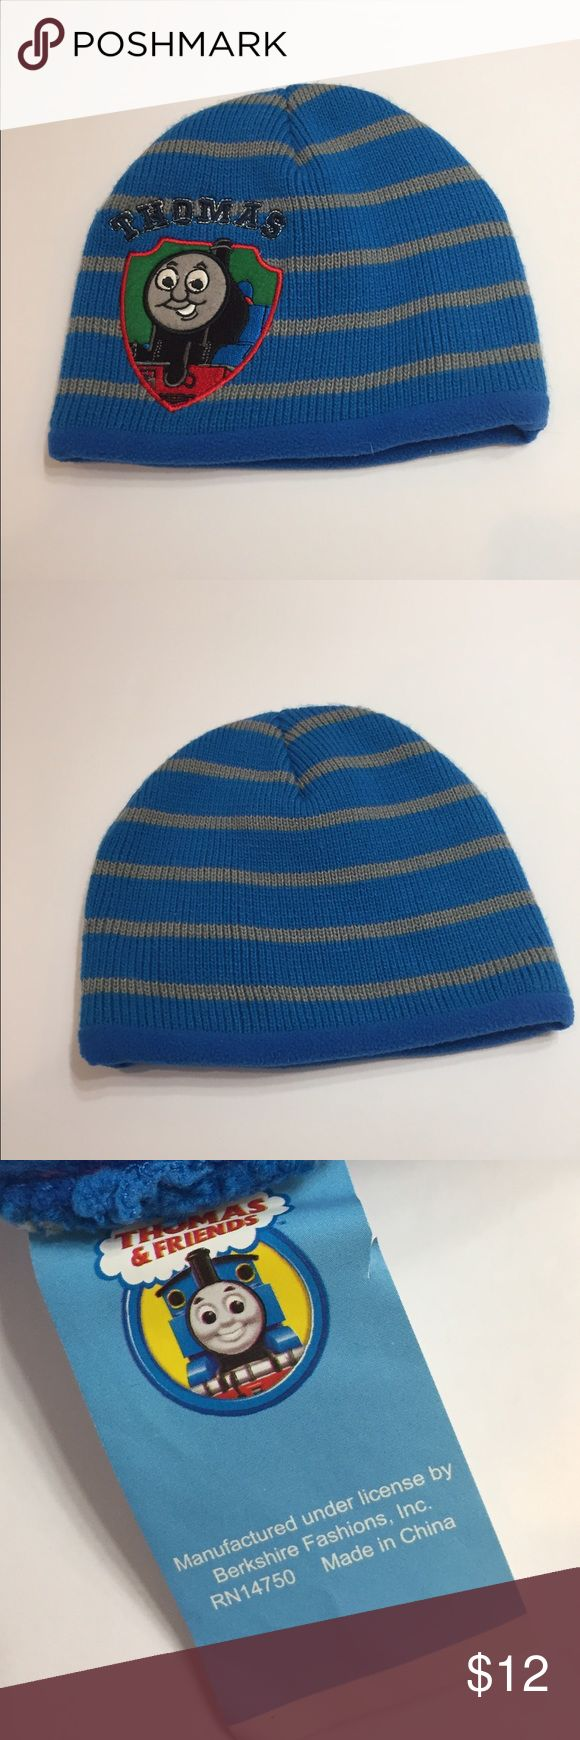 Thomas The Train Knit Hat Cute Thomas the Train Striped hat. Fleece lined inside. One size . Preowned , clean. Check out my closet to save on bundles. Reasonable offers accepted. Thomas & Friends Accessories Hats